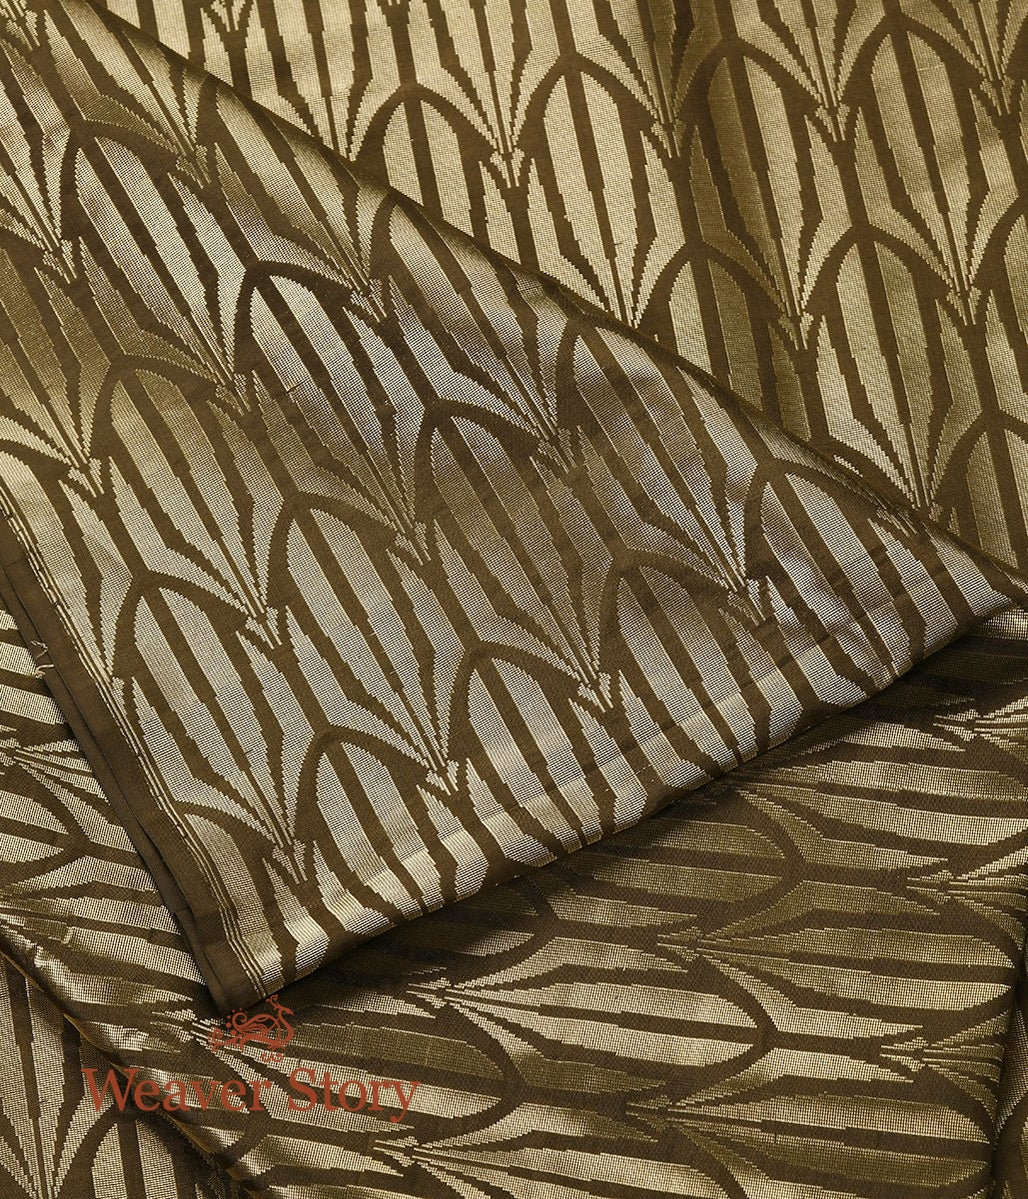 Handwoven Brown and Gold Banarasi Tissue Fabric